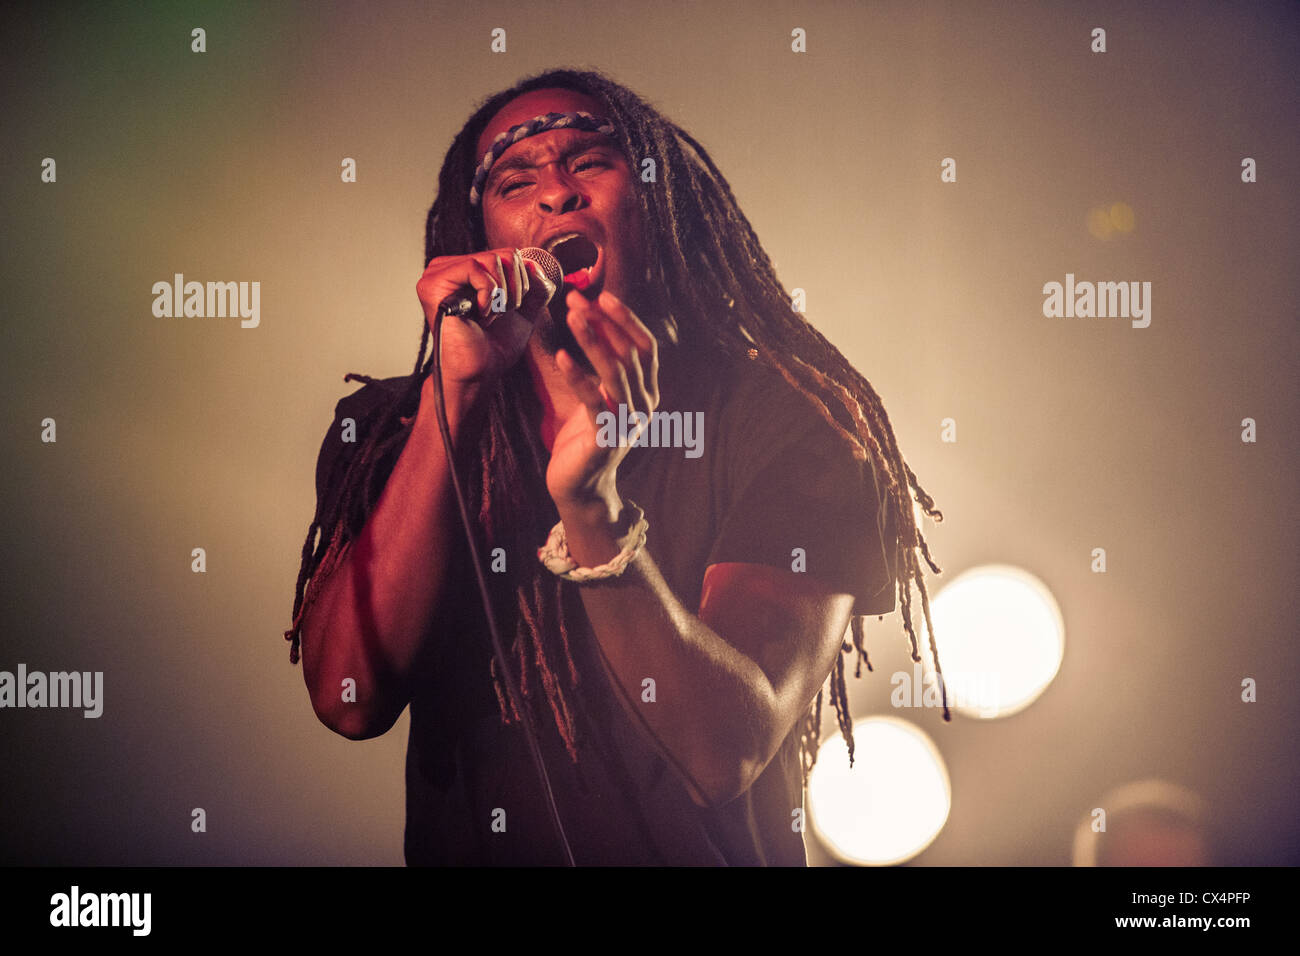 Jirod Greene, dreadlocked lead singer of the band Suite 709 sings during a concert at the Parish in Austin, Texas - Stock Image